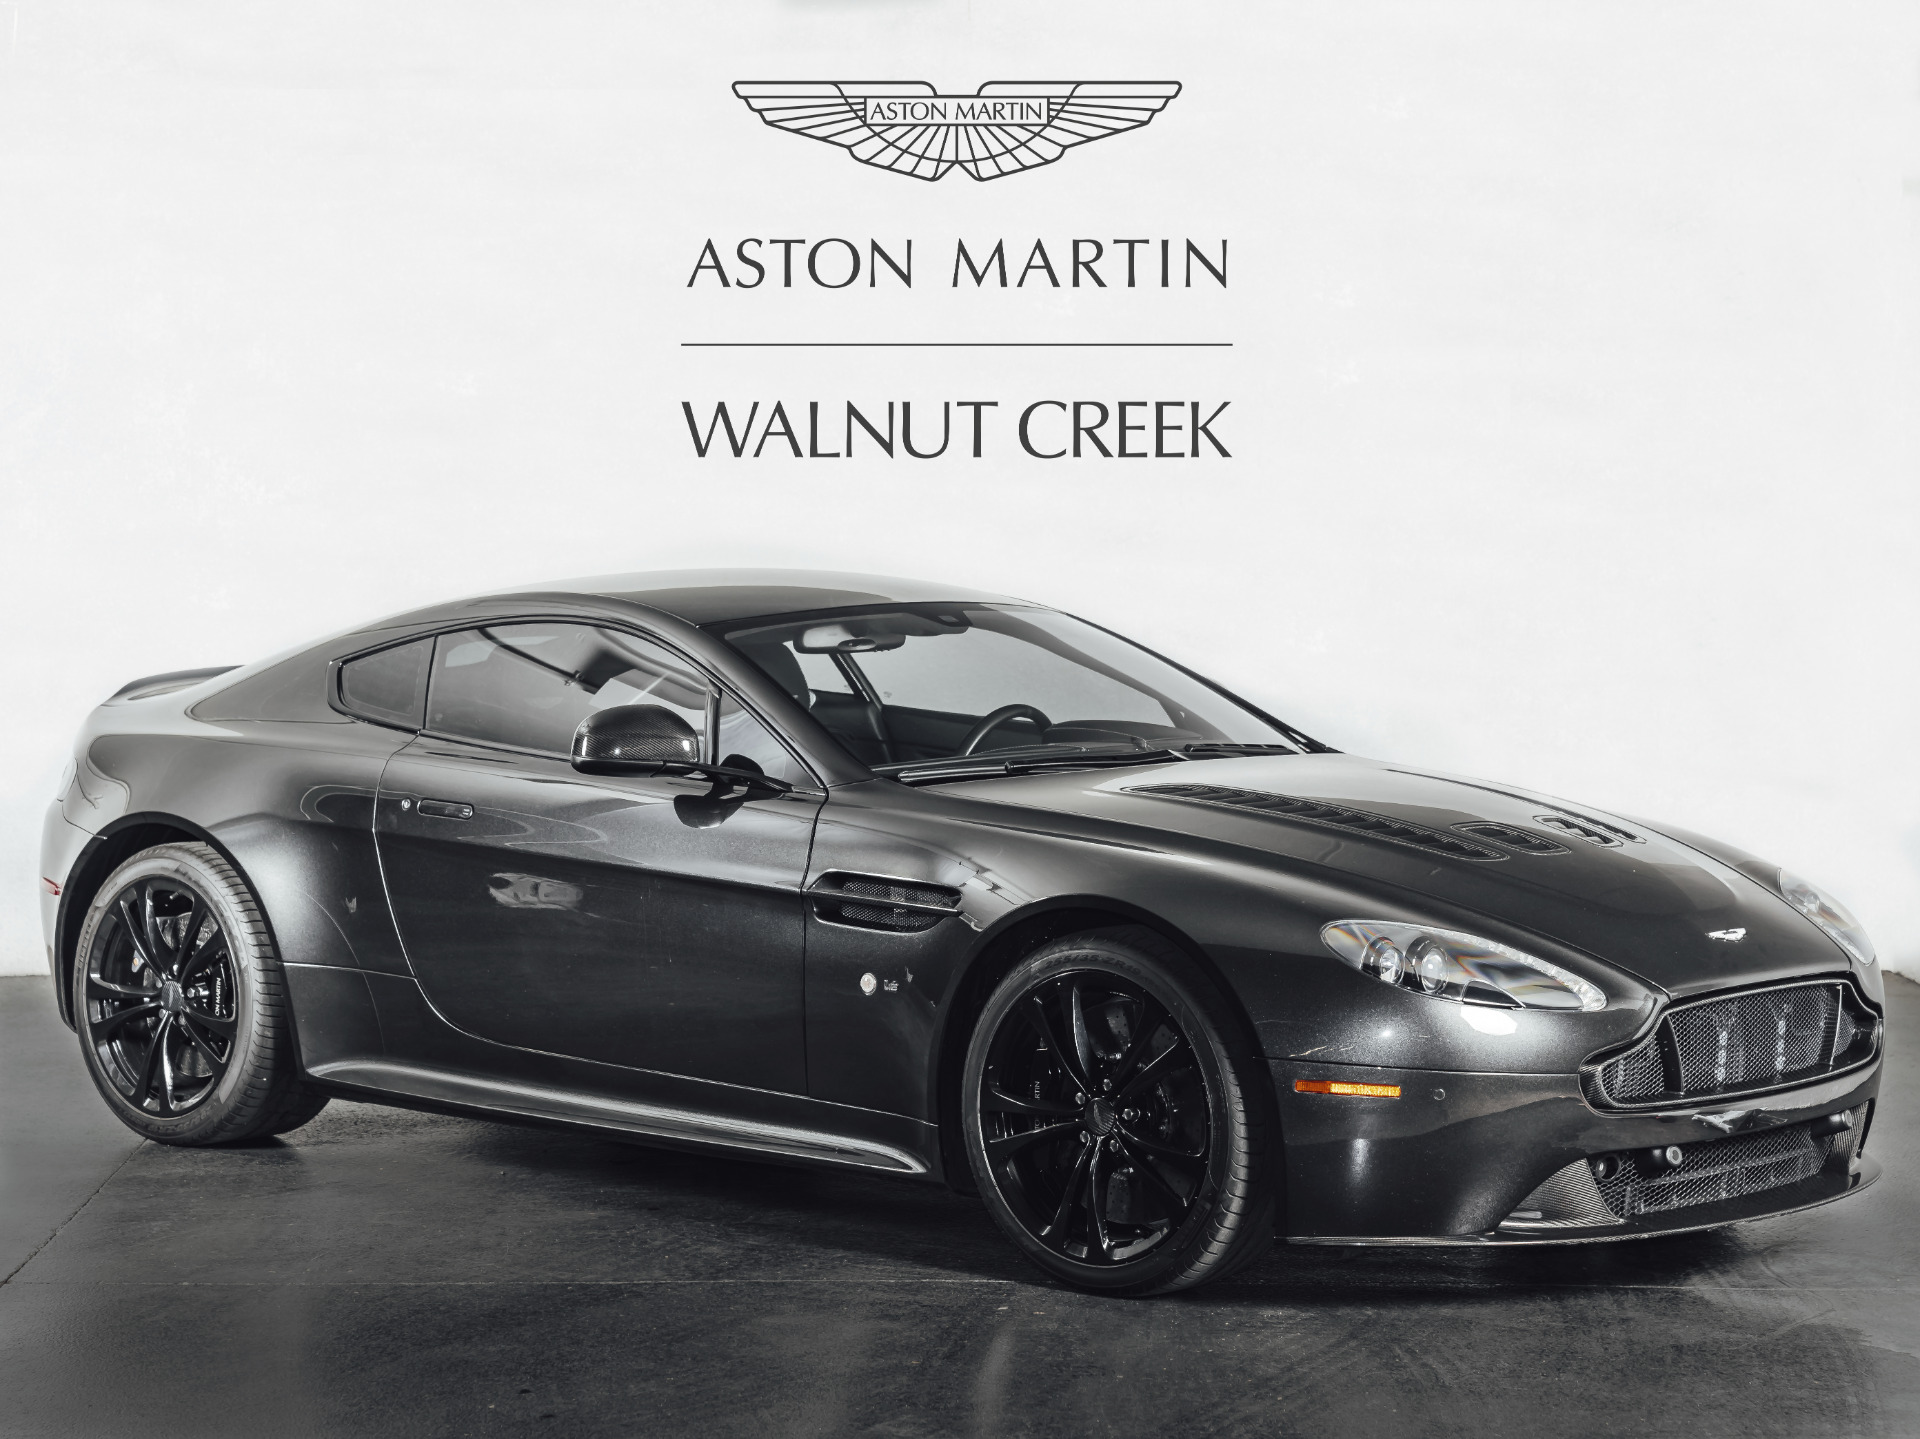 Used 2015 Aston Martin V12 Vantage S For Sale Sold The Luxury Collection Walnut Creek Stock Fwc1372